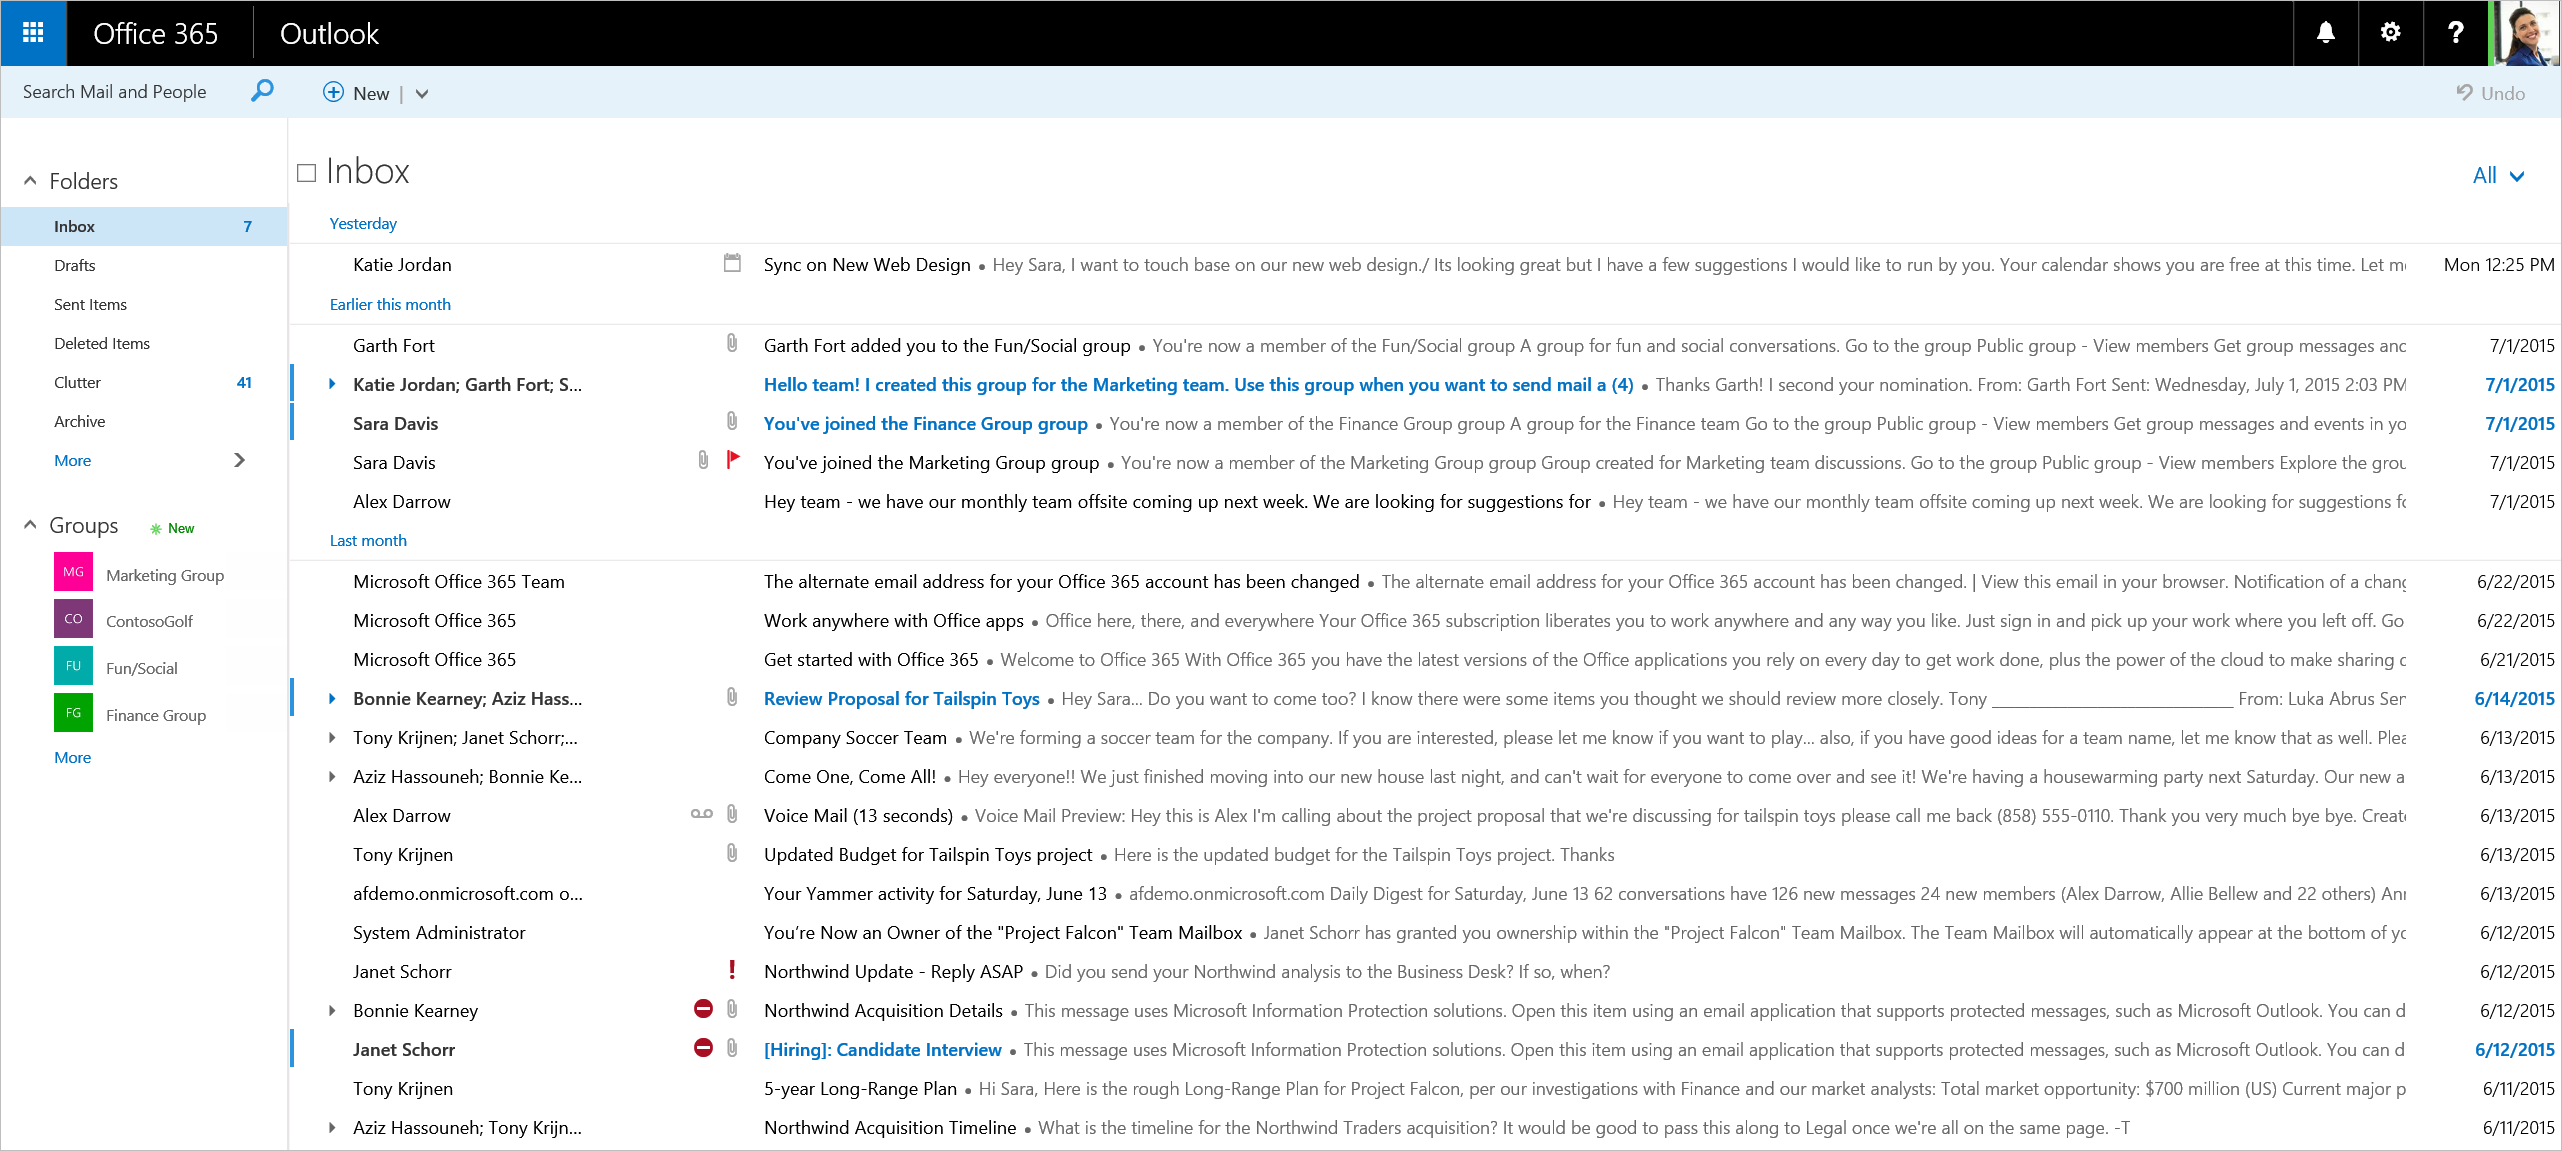 New features coming to Outlook on the web - Microsoft 365 Blog